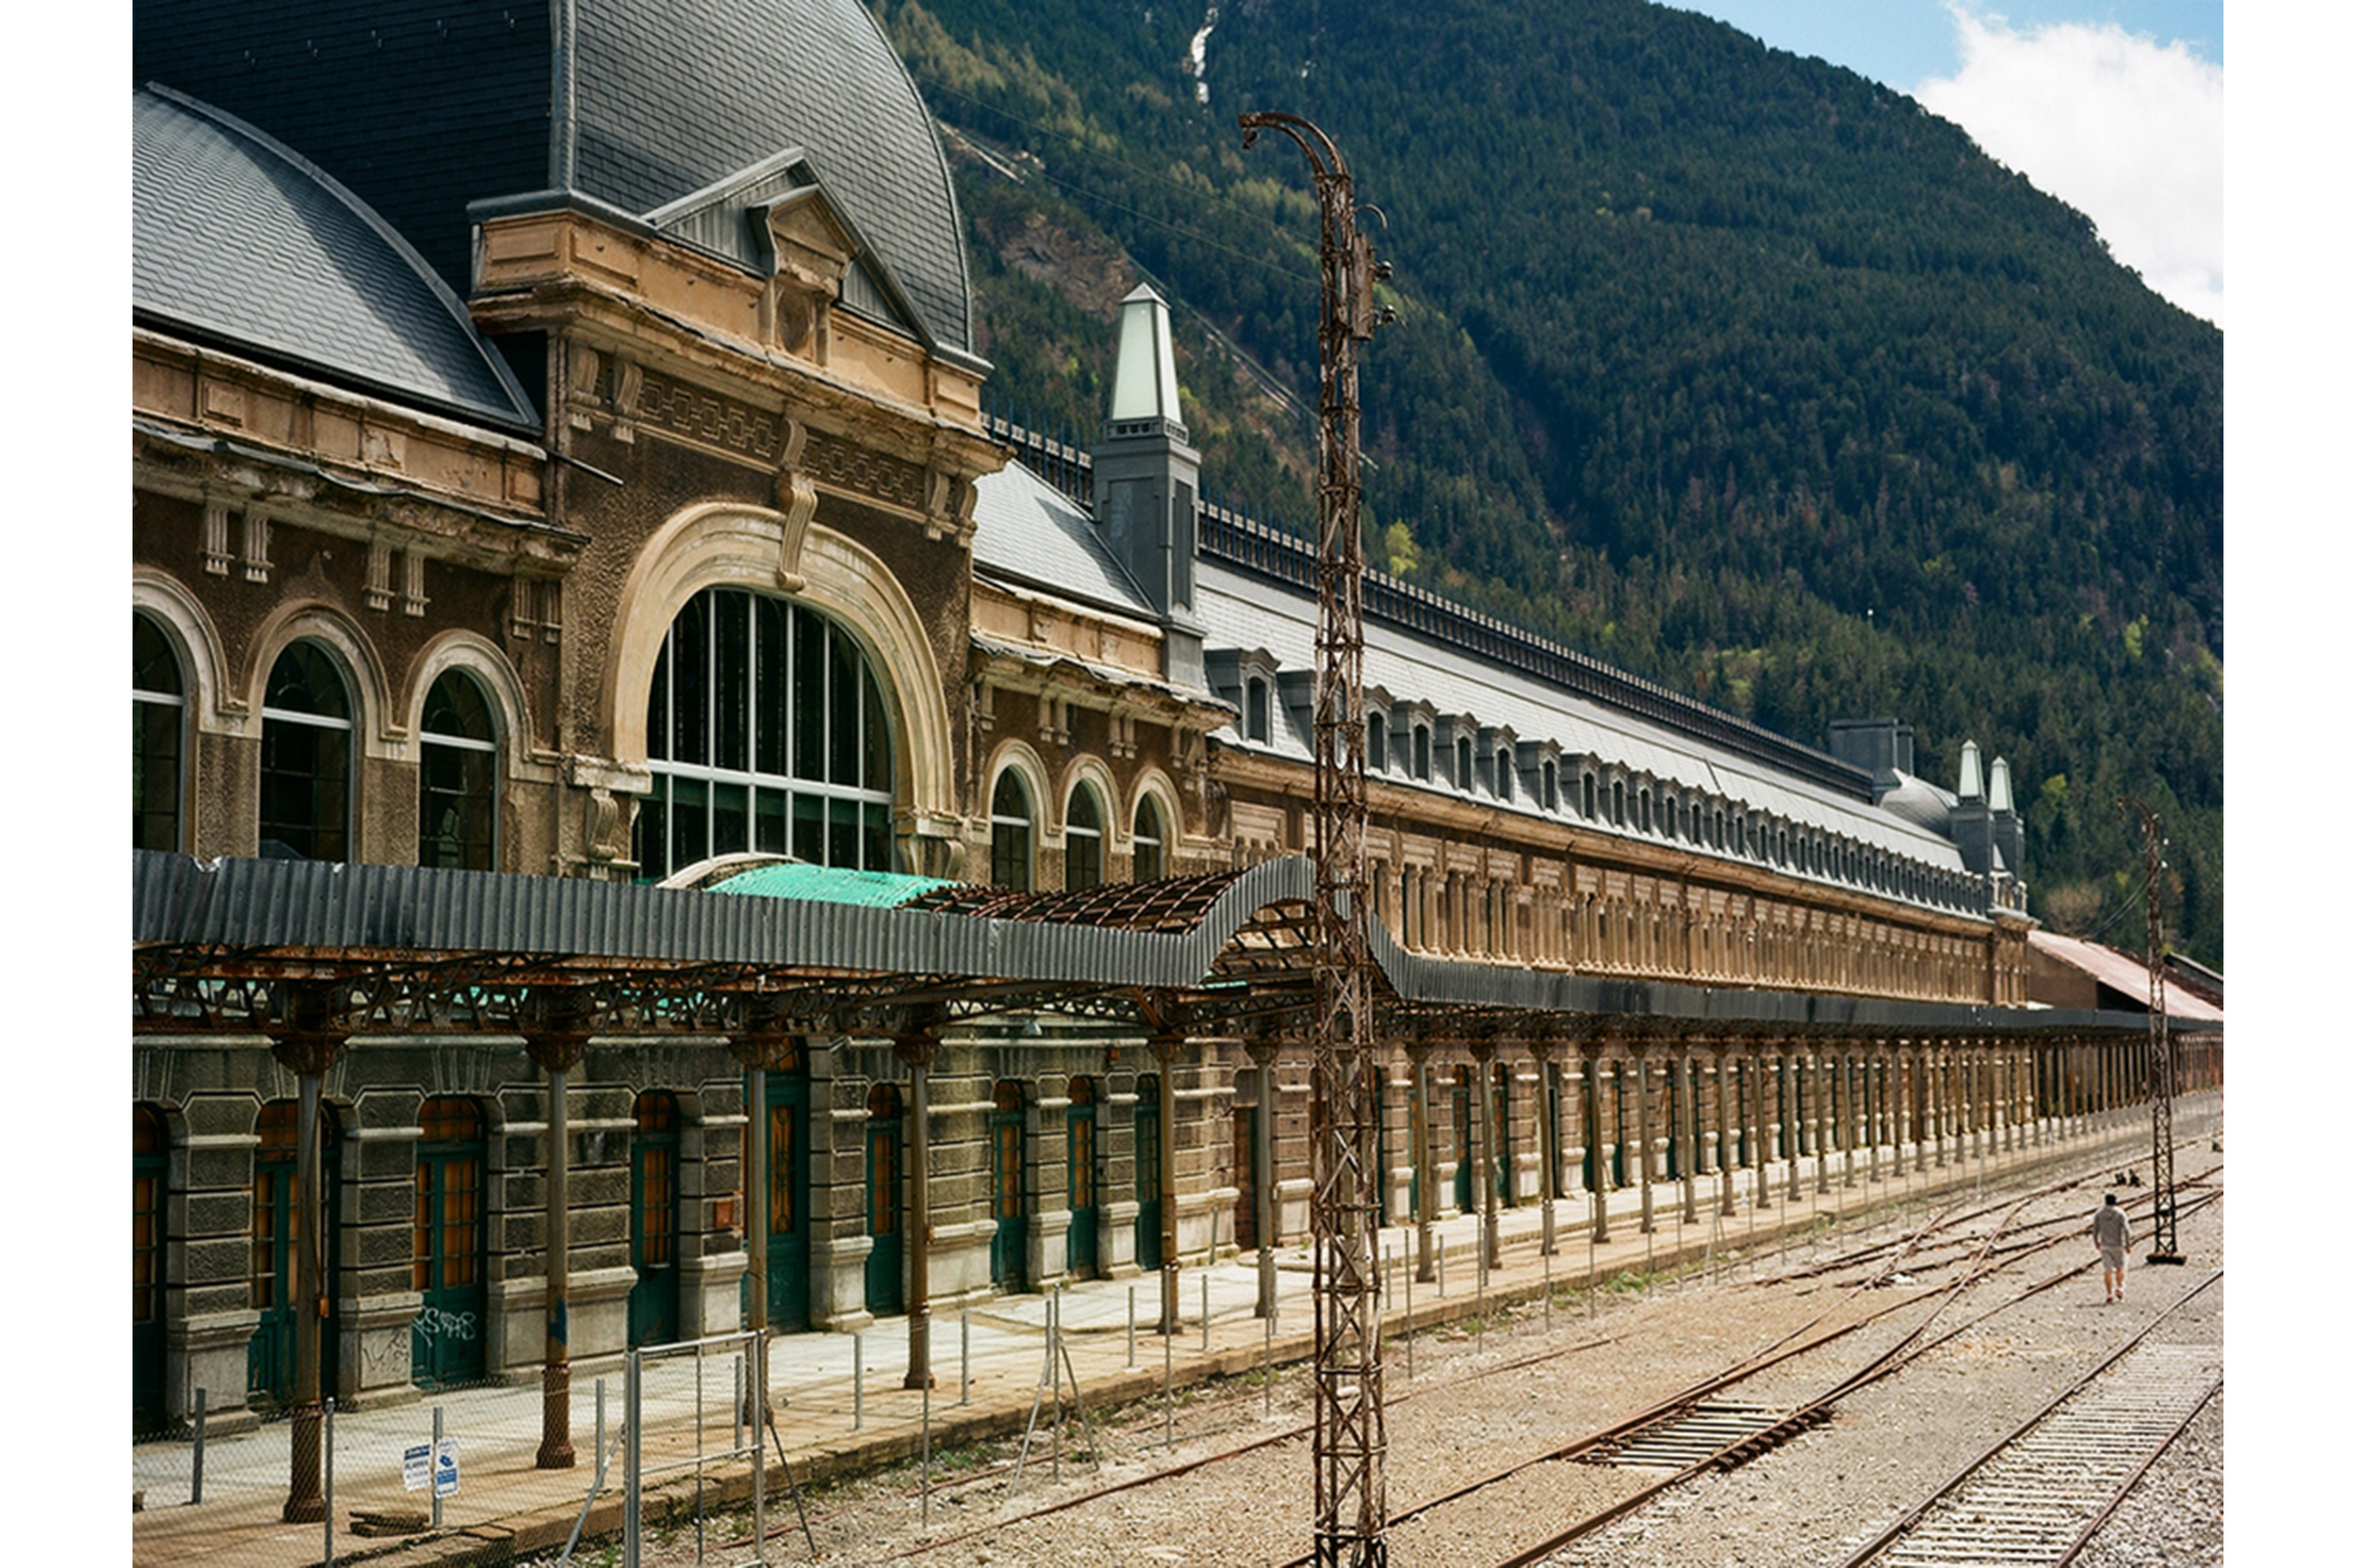 Canfranc, Spain, 2015